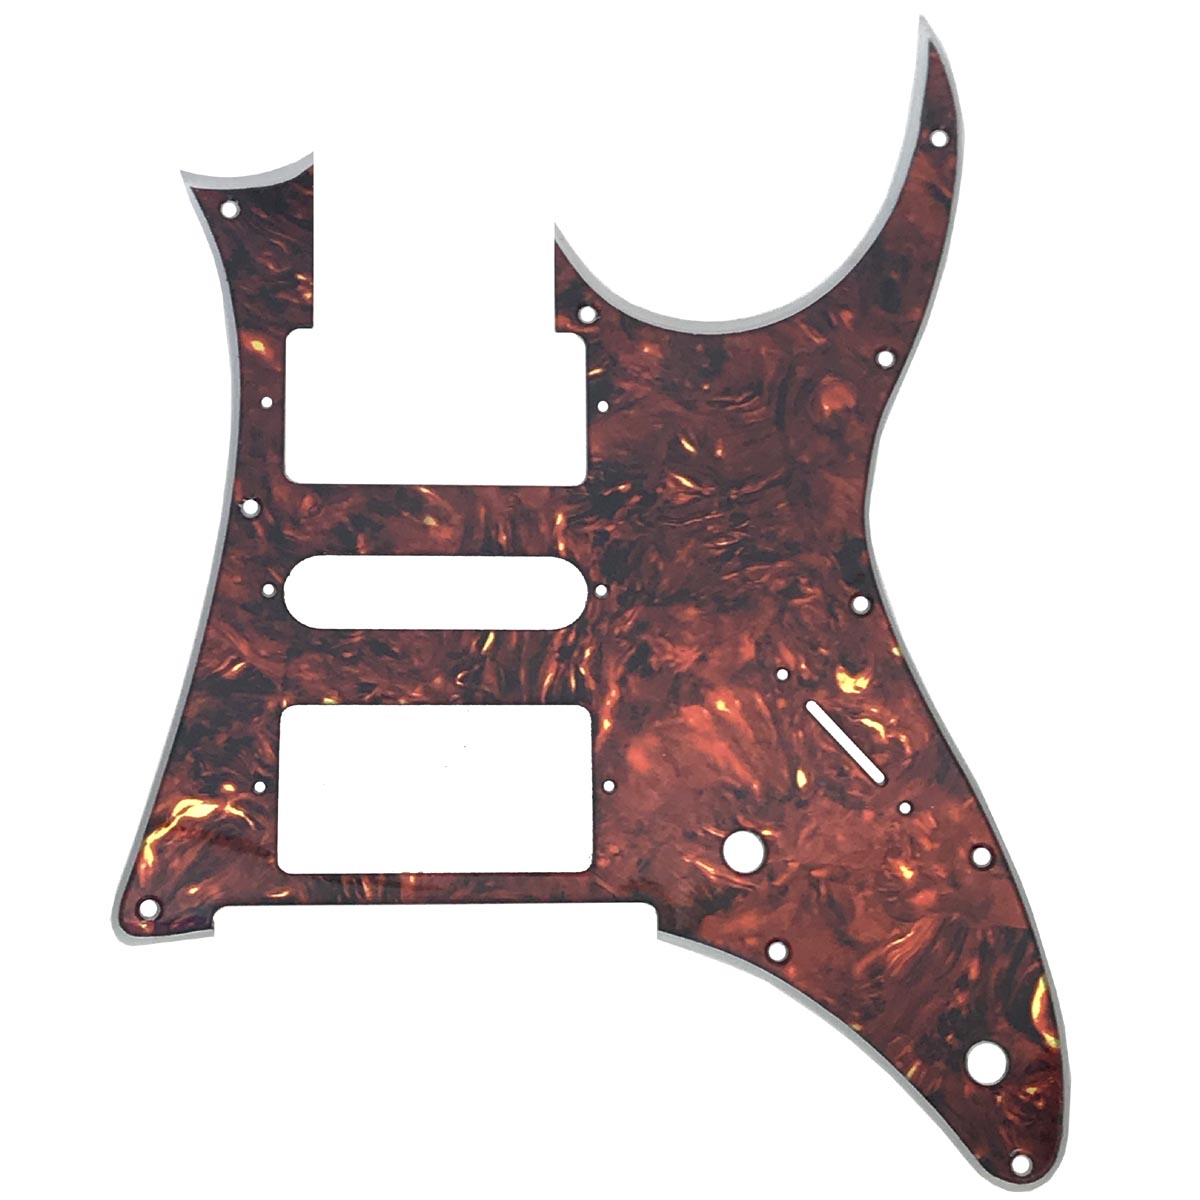 Ibanez RG 350 DX Pickguard - Iridescent Red Tortoise - 2-ply- CUSTOM ORDER